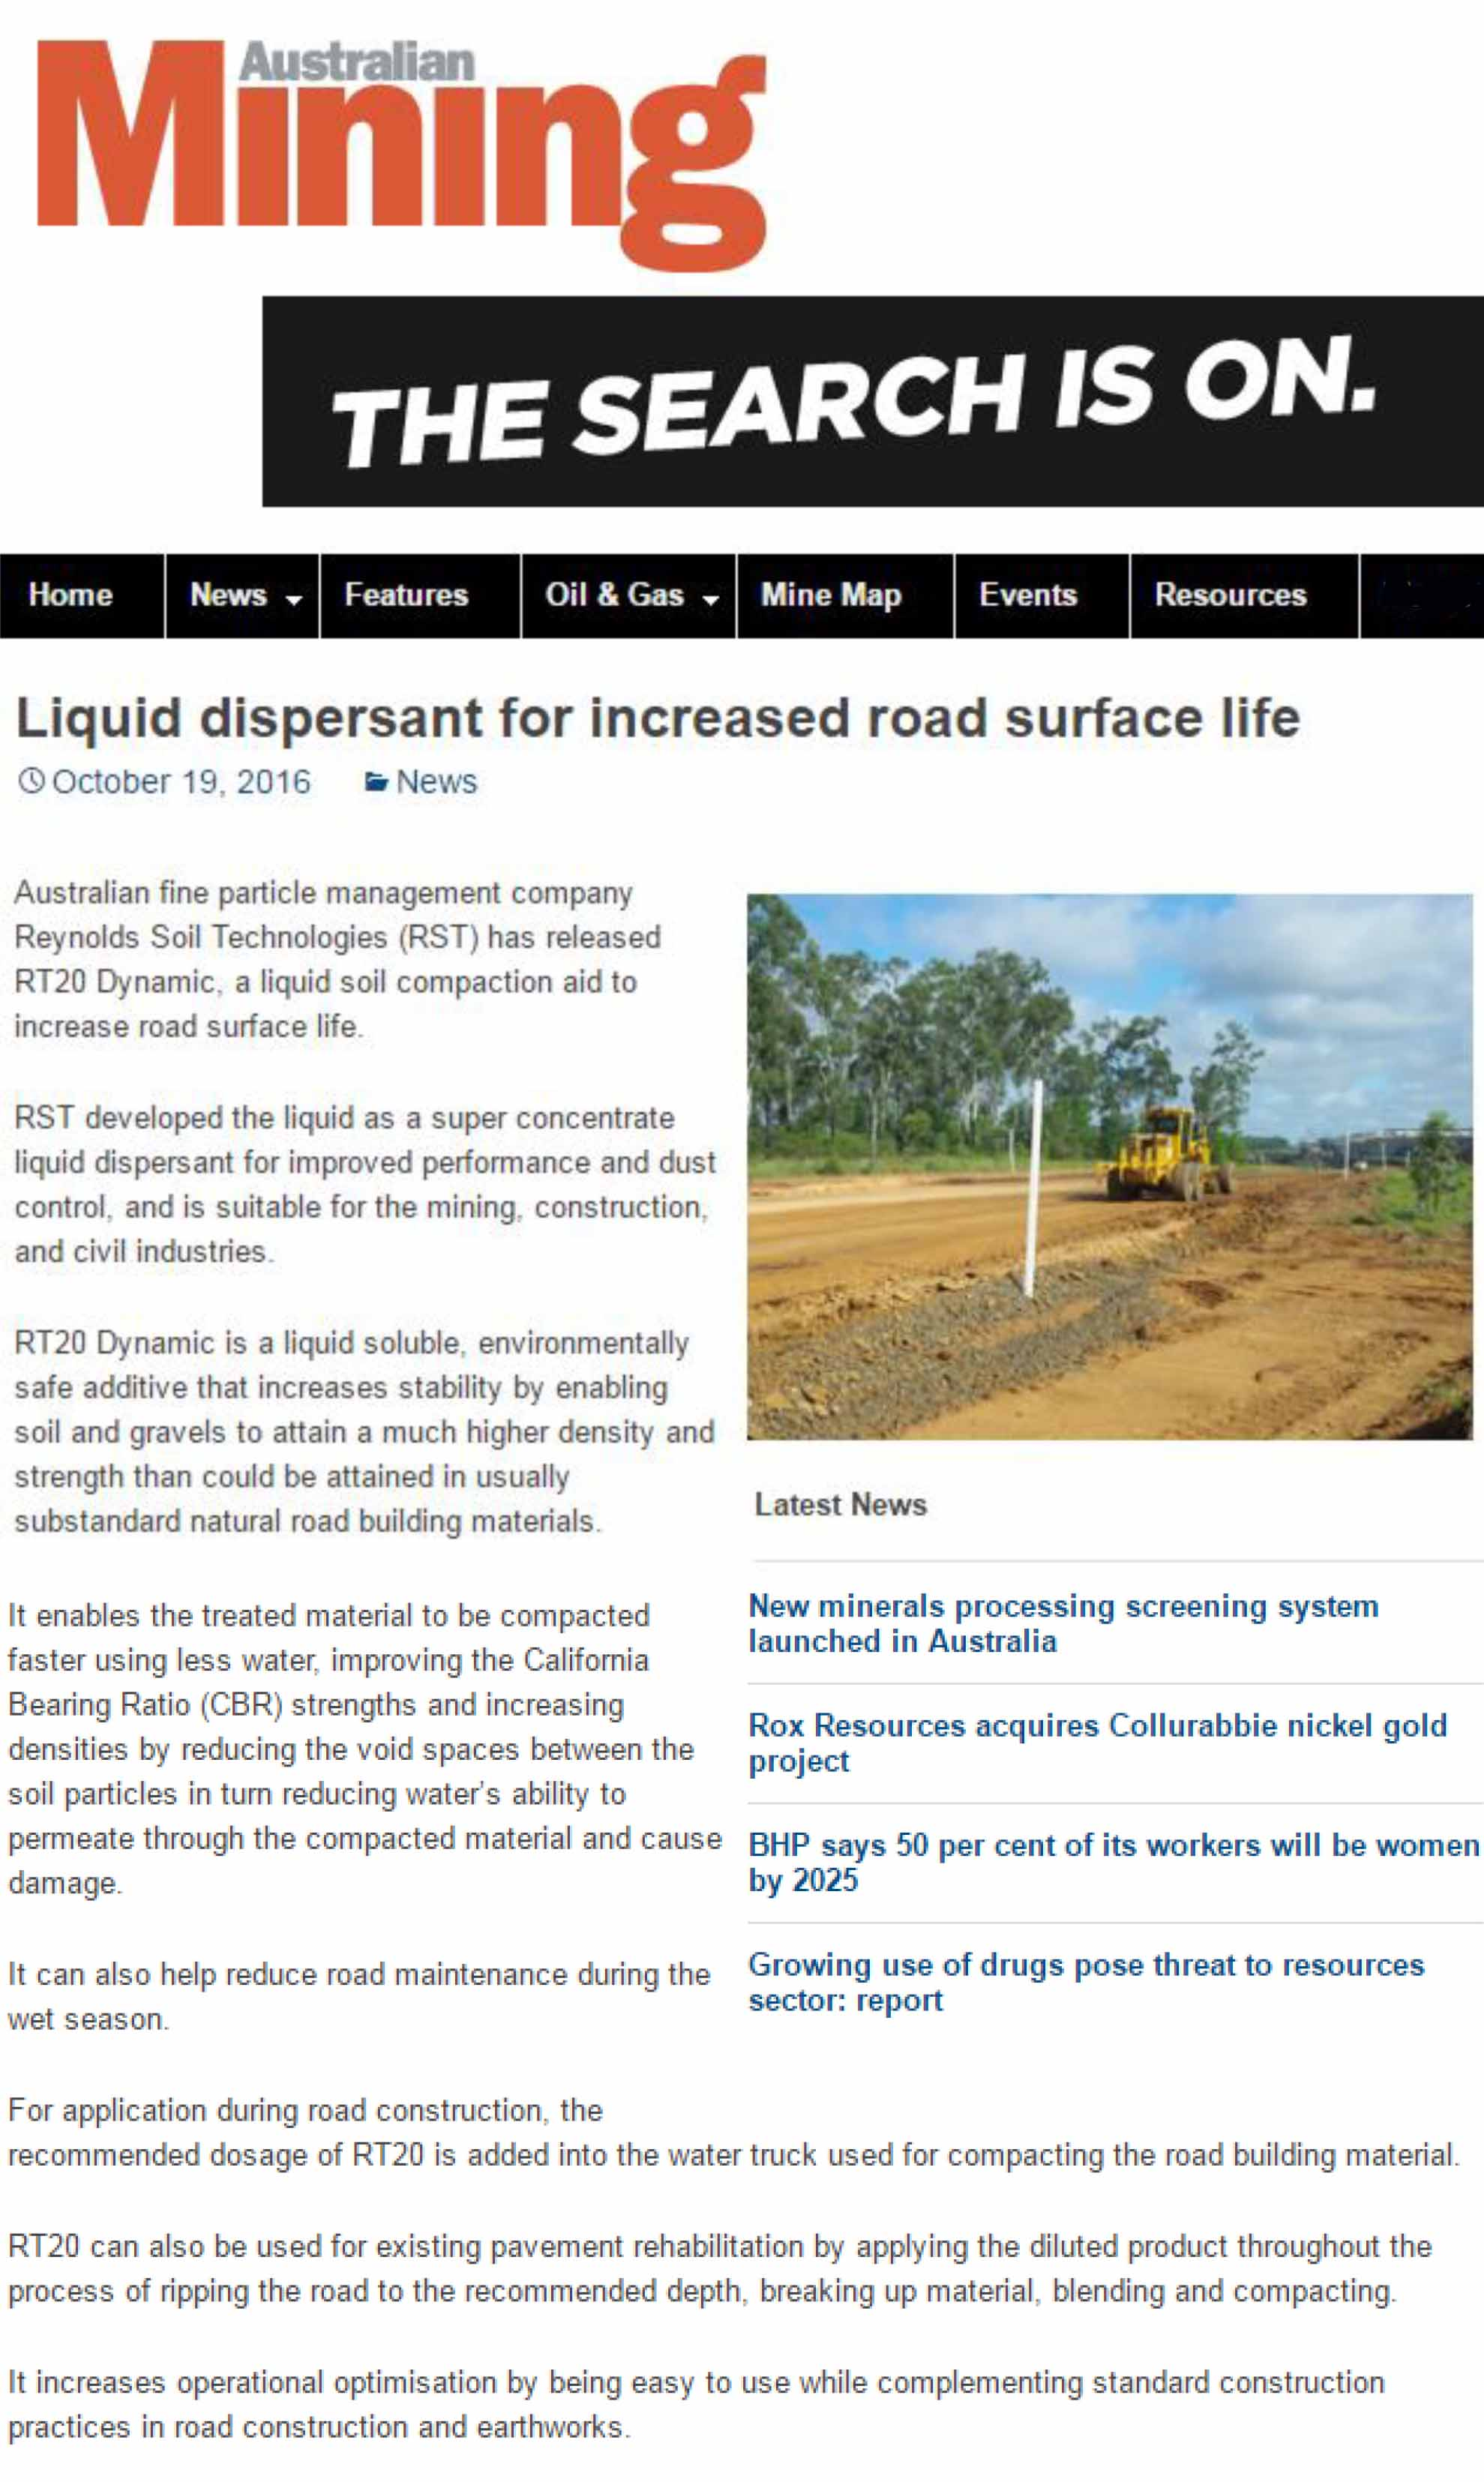 Liquid Dispersant for Increased Road Surface Life